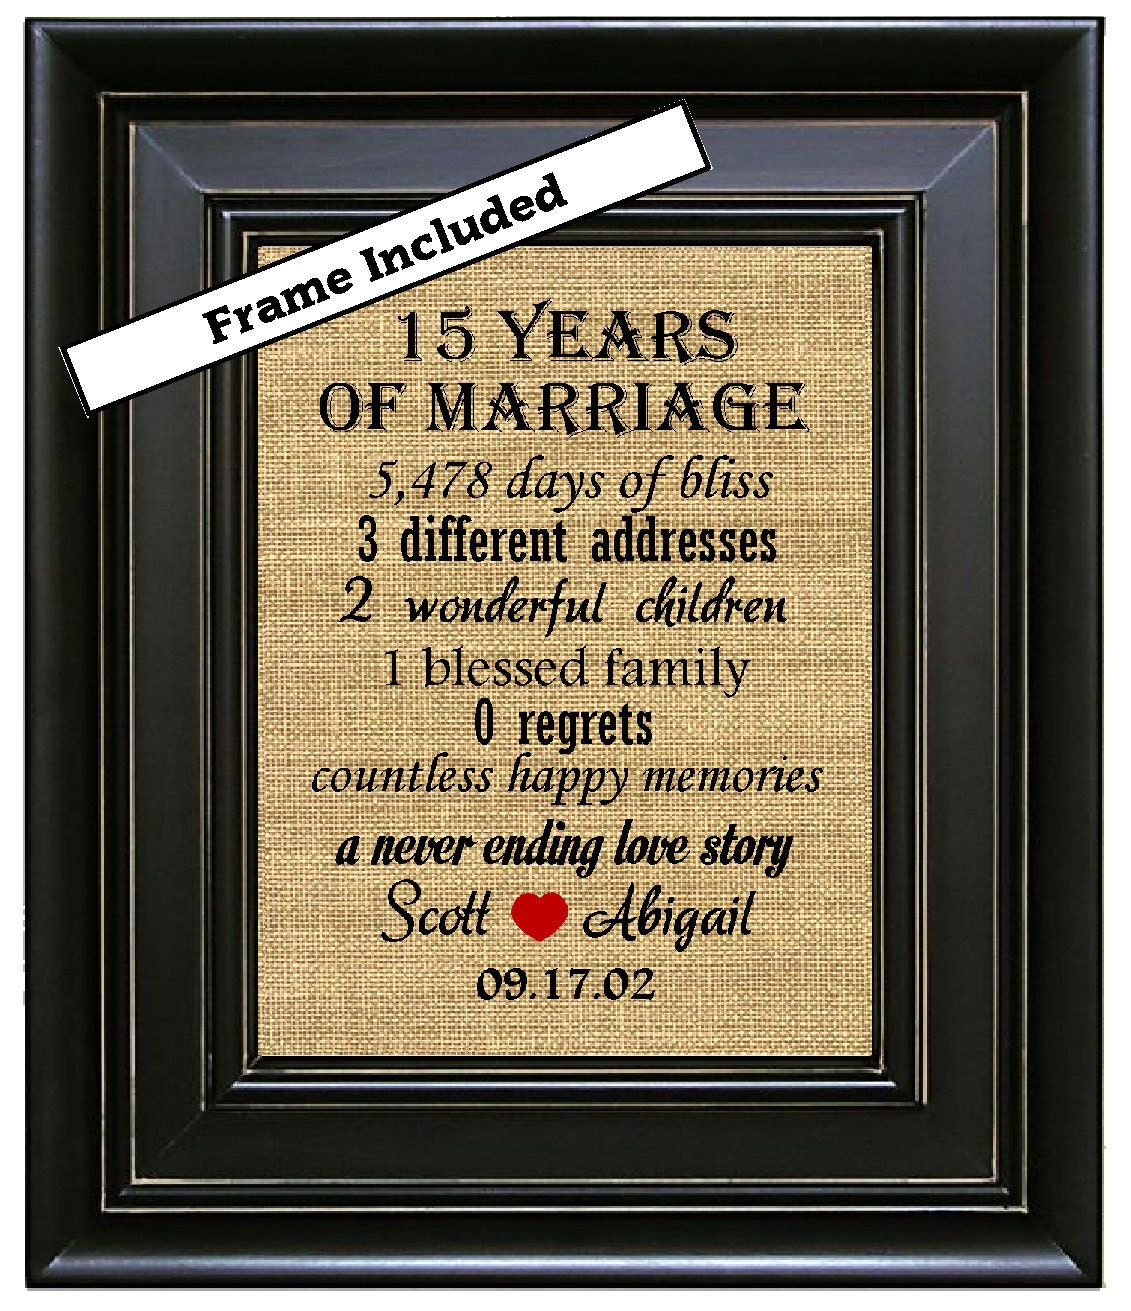 Gifts For 15th Wedding Anniversary: Personalized FRAMED 15th Anniversary Gift Burlap Wall